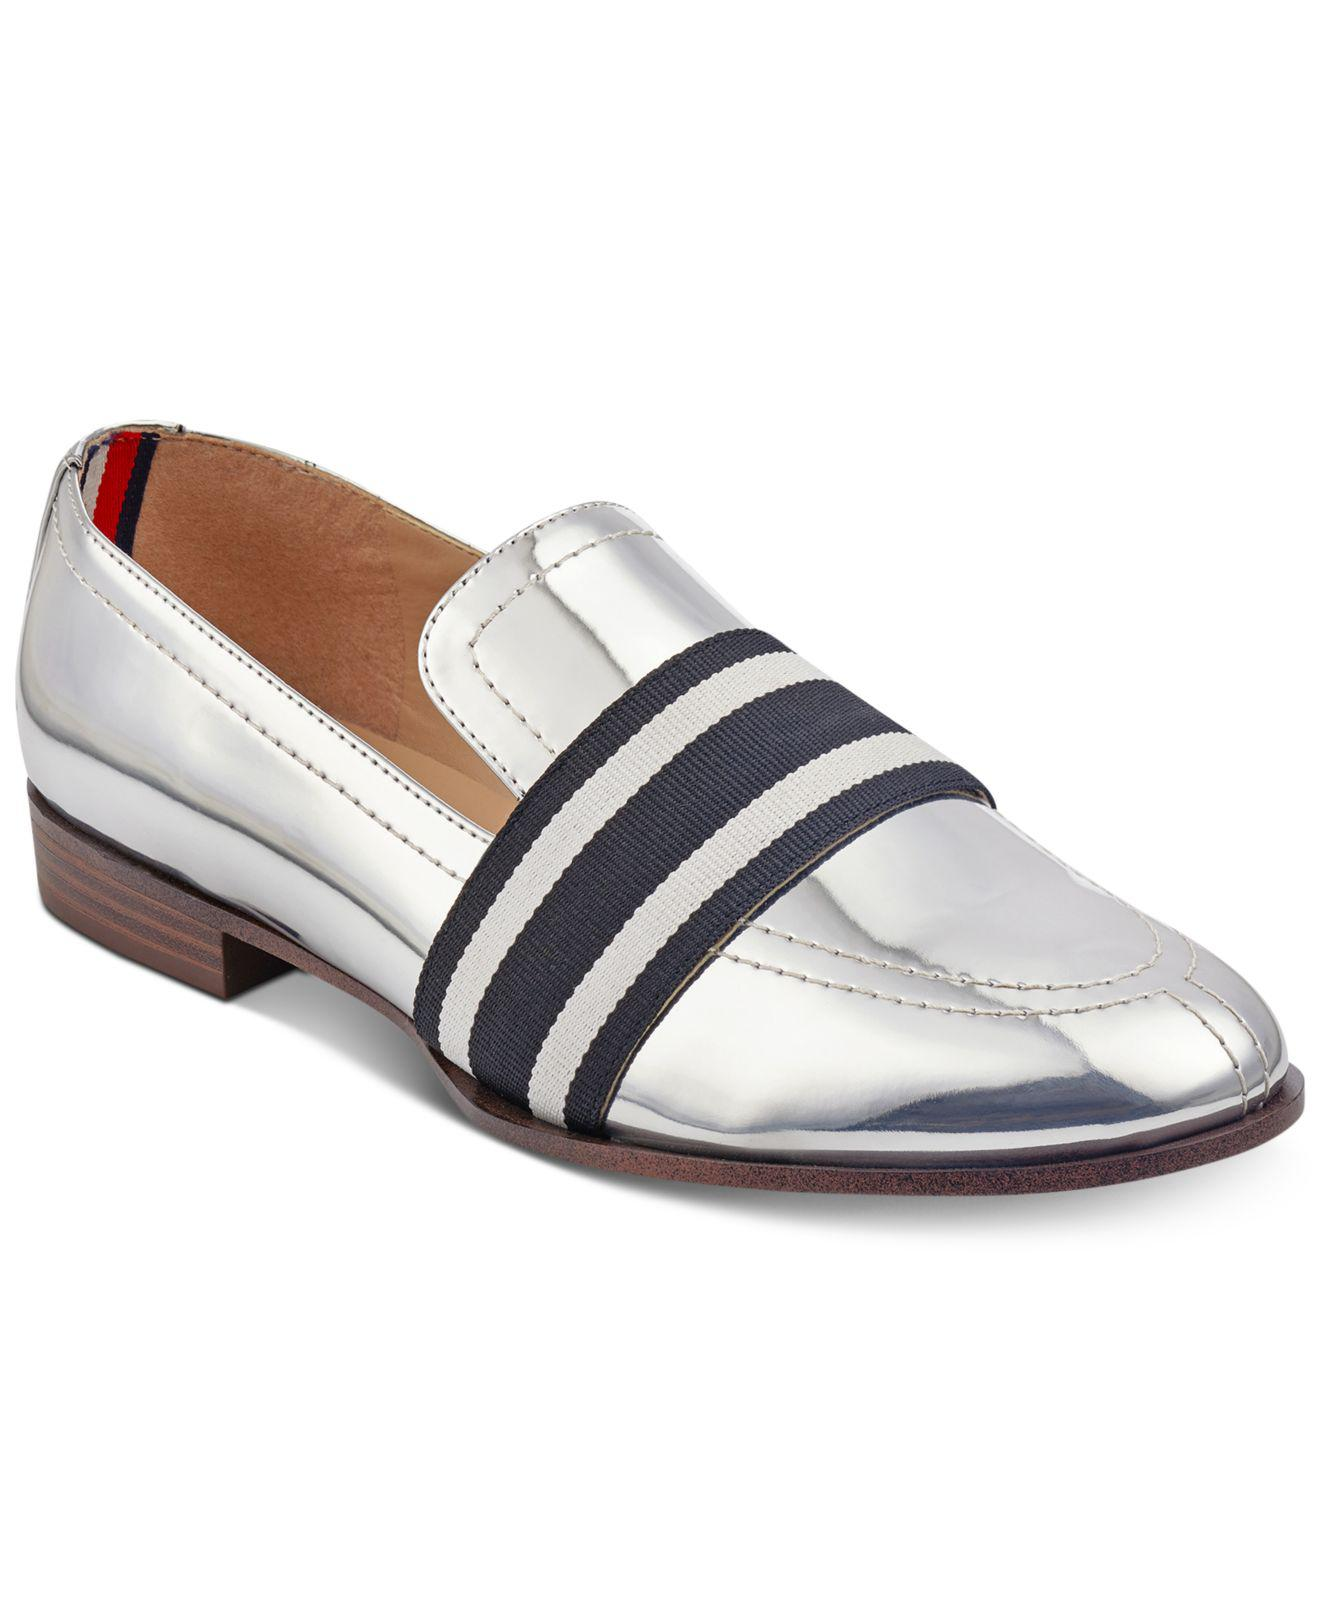 1470bb6f4 Lyst - Tommy Hilfiger Ignaz Loafers in Metallic